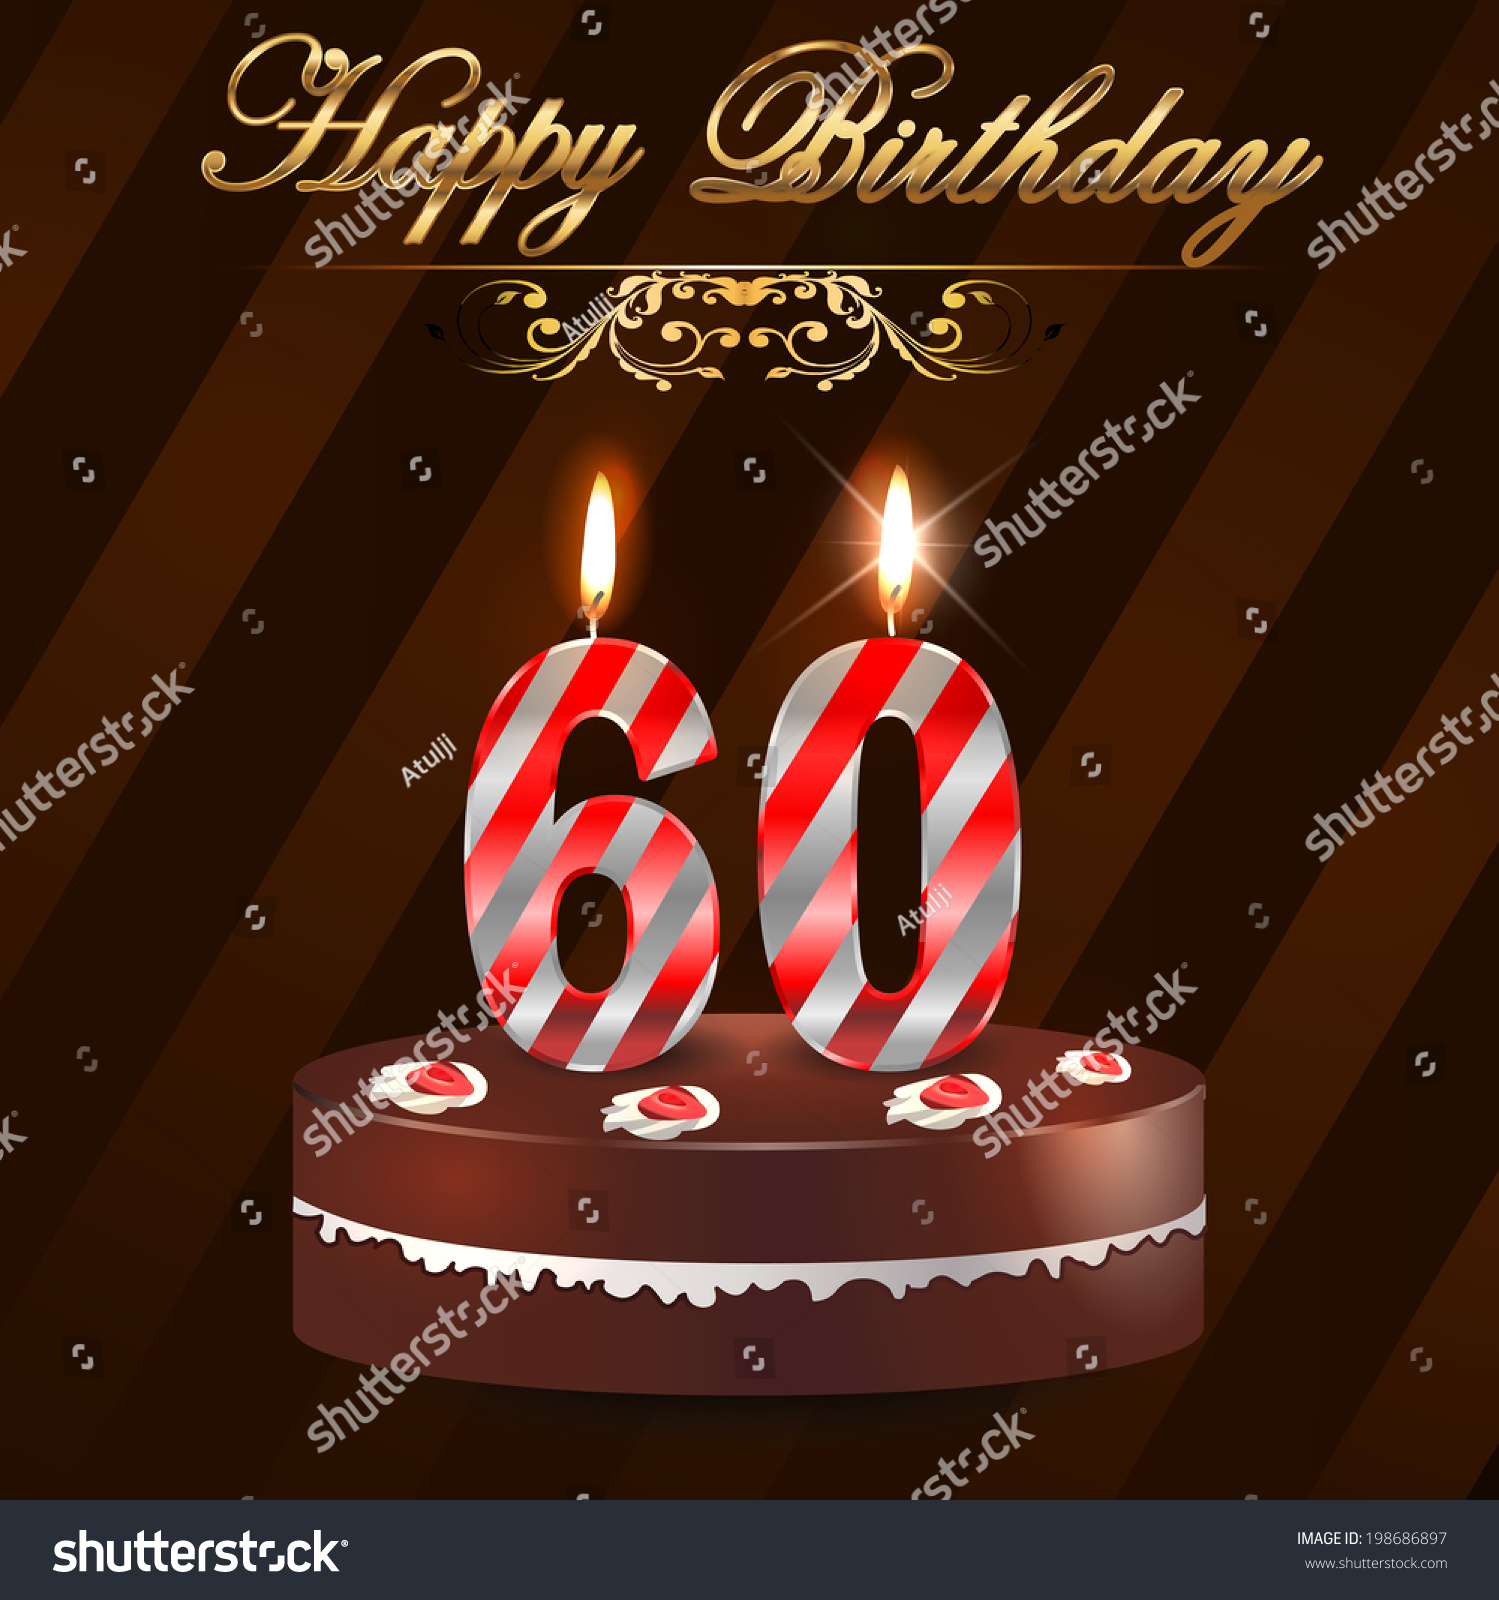 60 Year Happy Birthday Card Cake Vector 198686897 Shutterstock – Happy 60th Birthday Cards